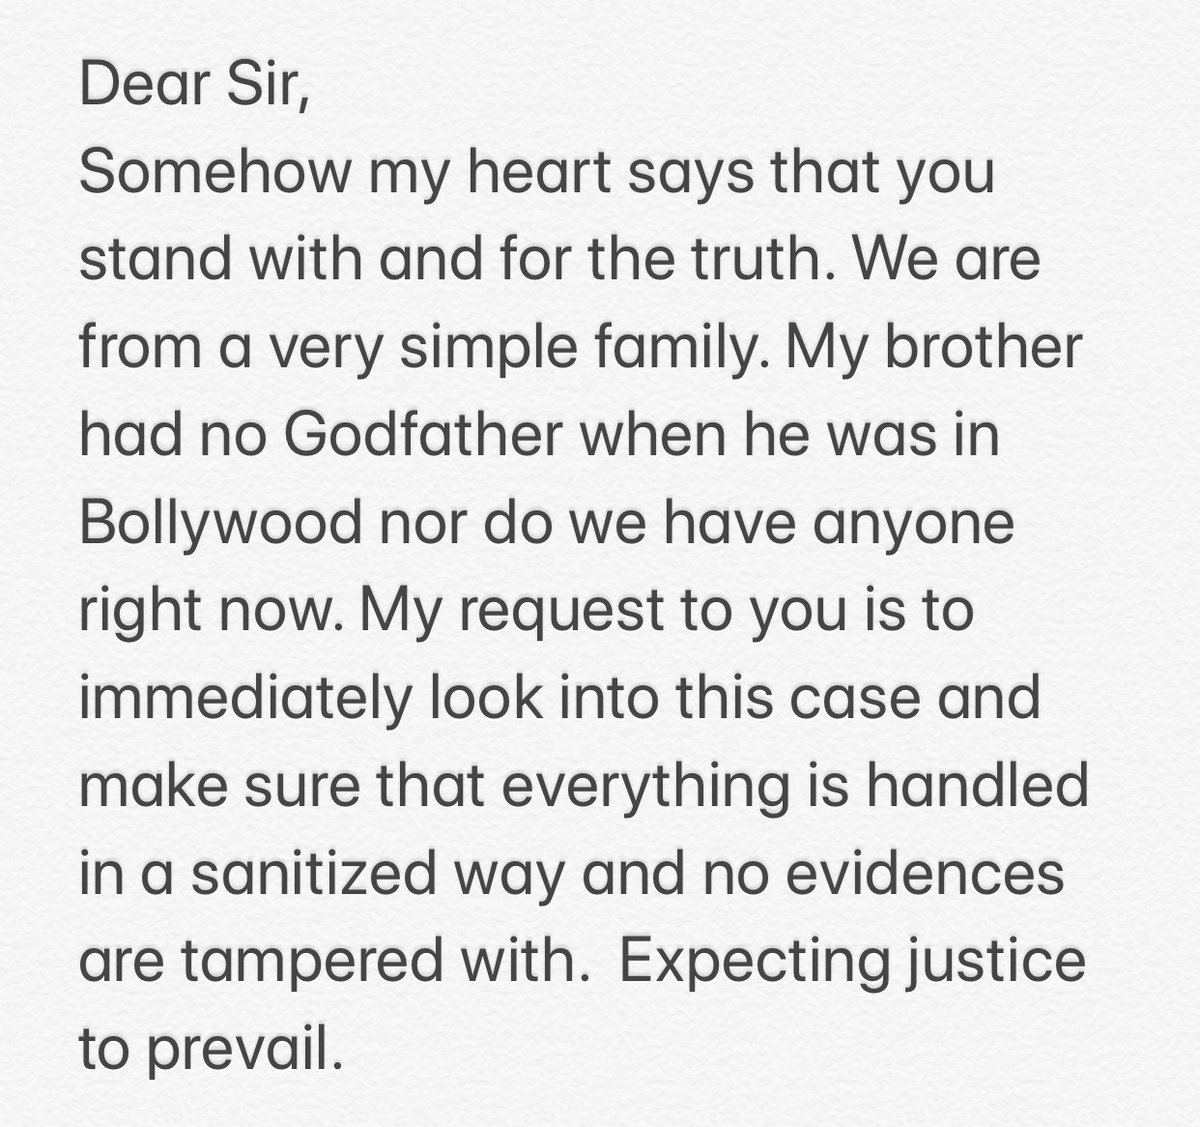 I am sister of Sushant Singh Rajput and I request an urgent scan of the whole case. We believe in India's judicial system & expect justice at any cost. @narendramodi @PMOIndia #JusticeForSushant #SatyamevaJayate